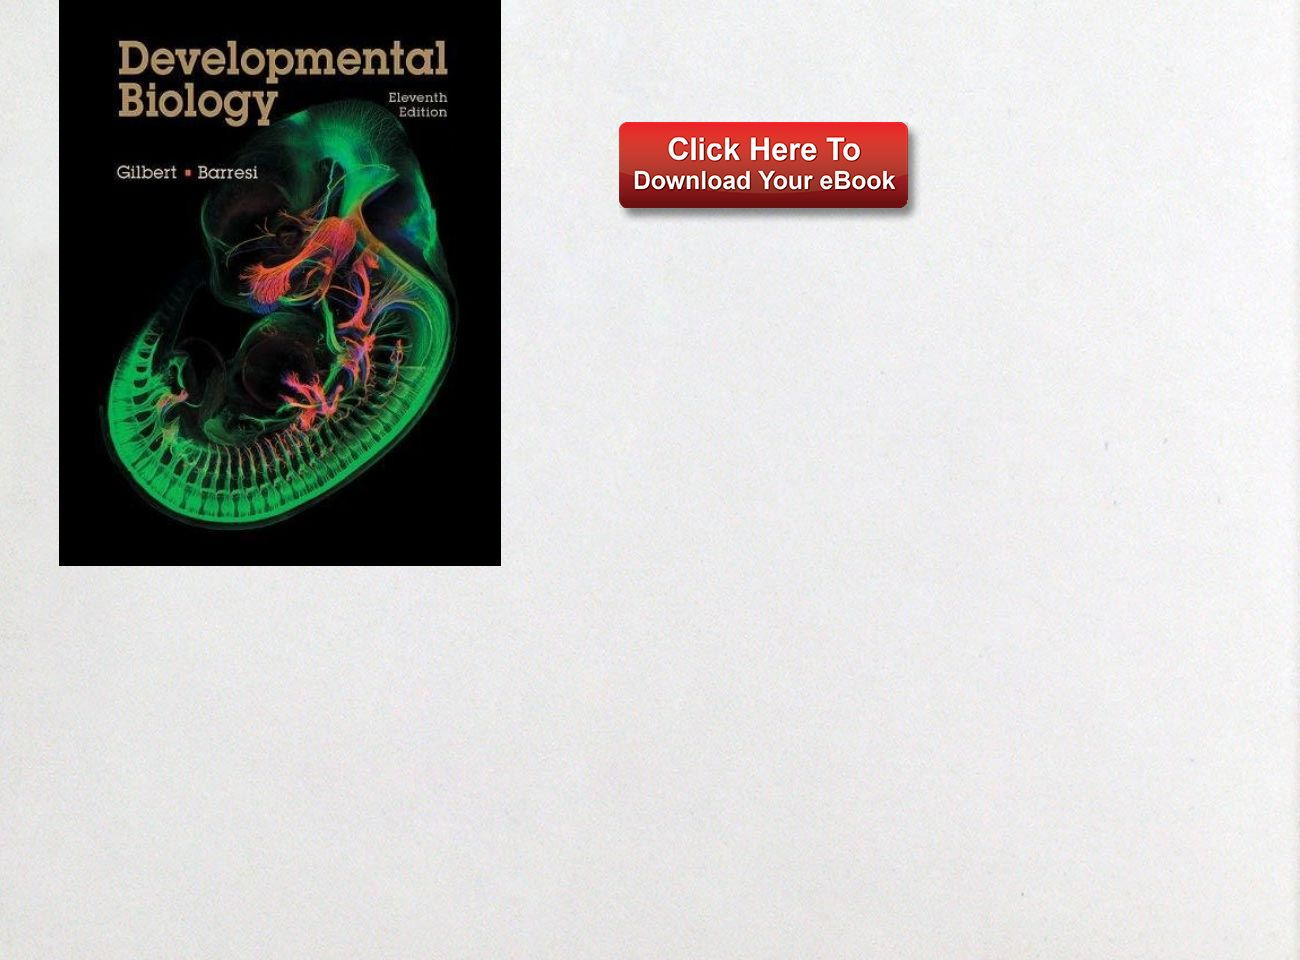 Download Ebook Developmental Biology Pdf Text Images Music Video